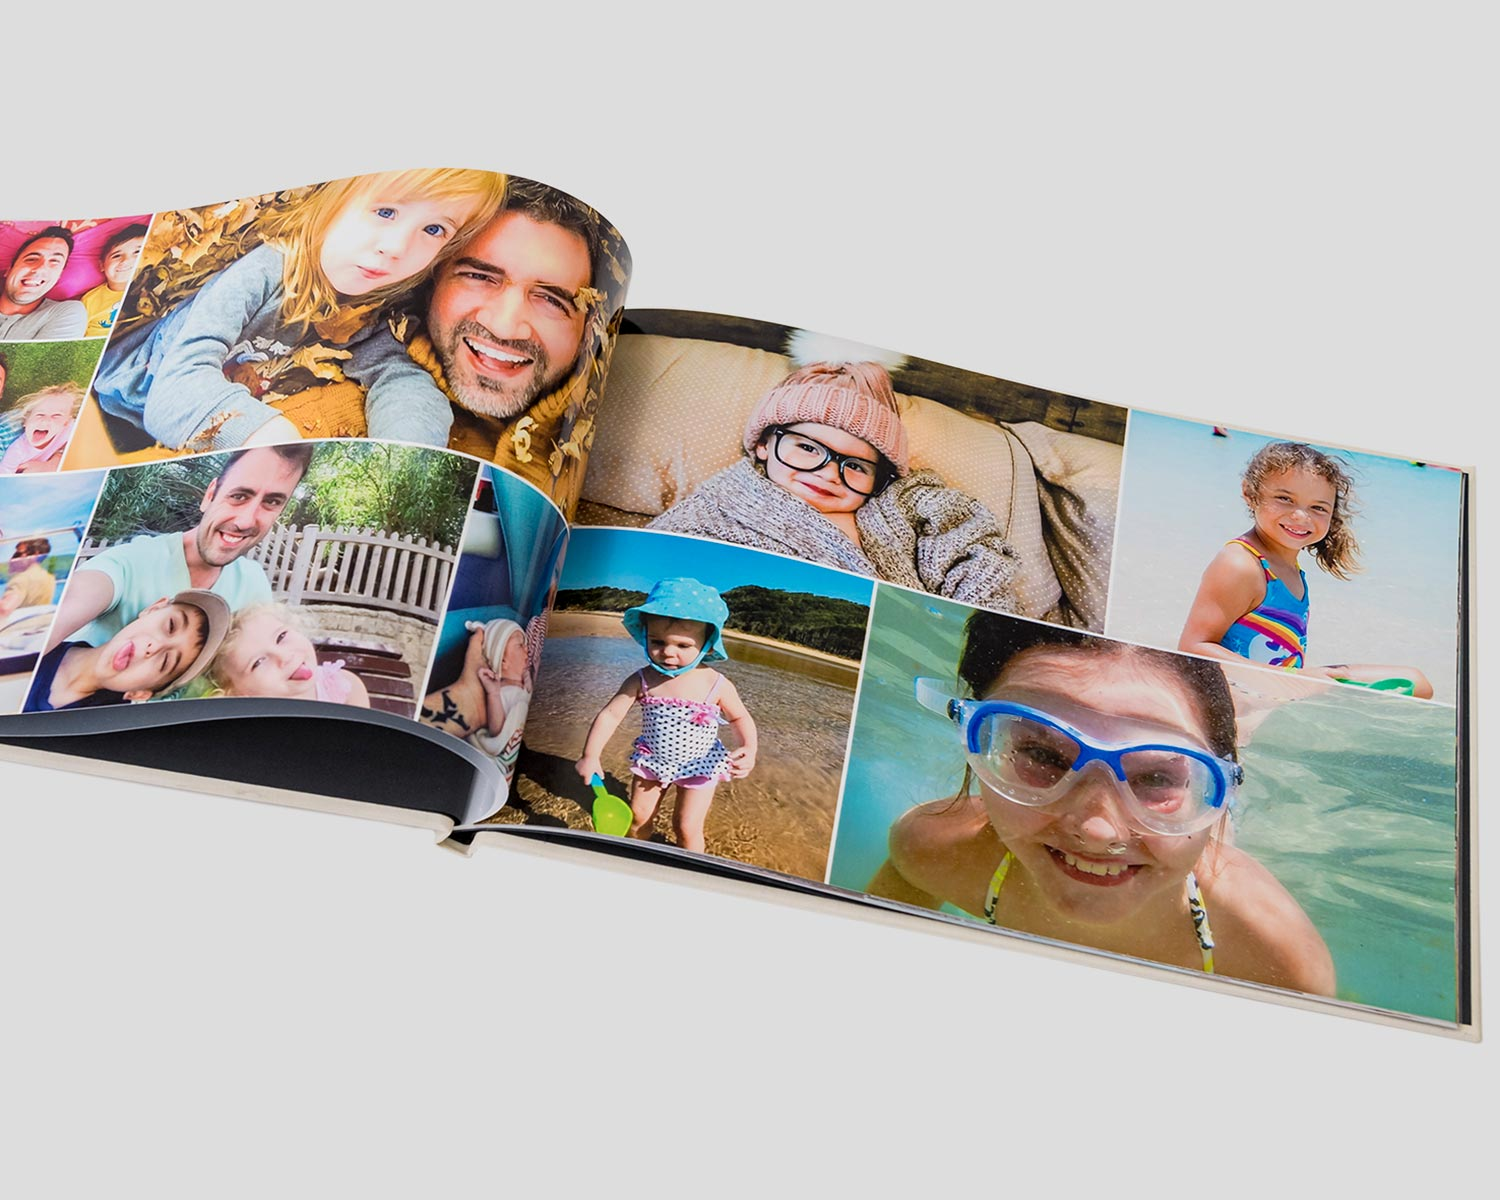 Opened personalised photo book with family photos on display